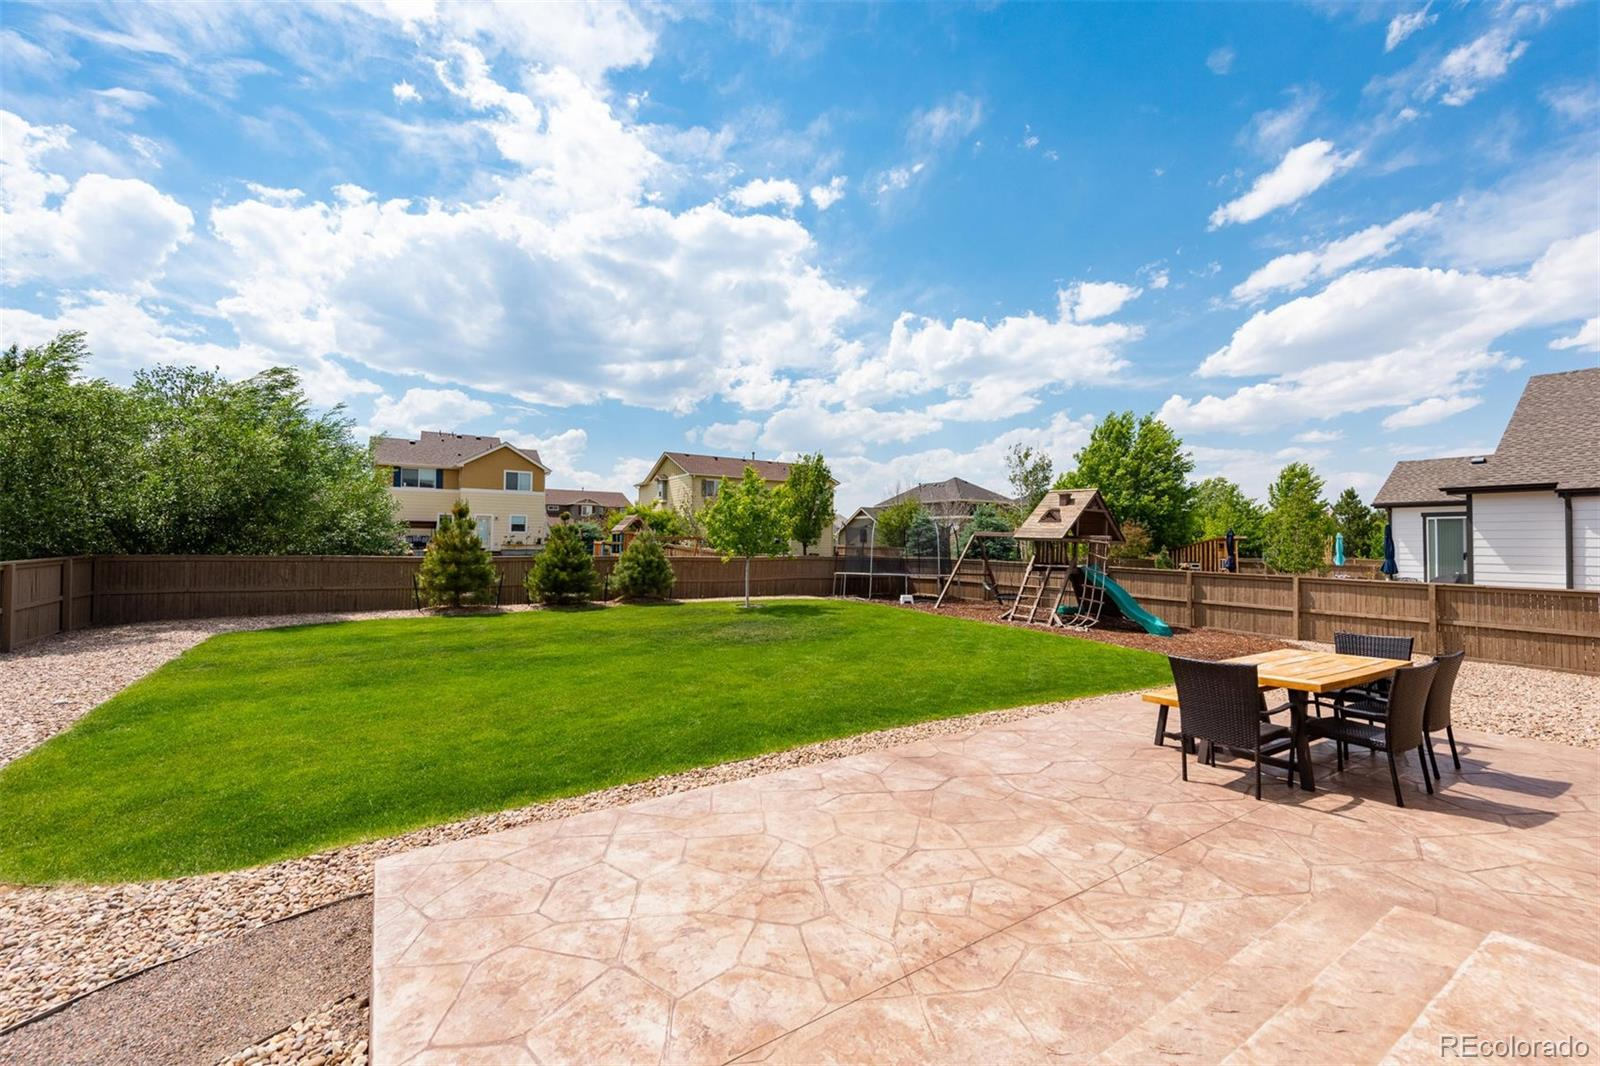 MLS# 1721440 - 29 - 545 Sudbury Street, Castle Rock, CO 80104